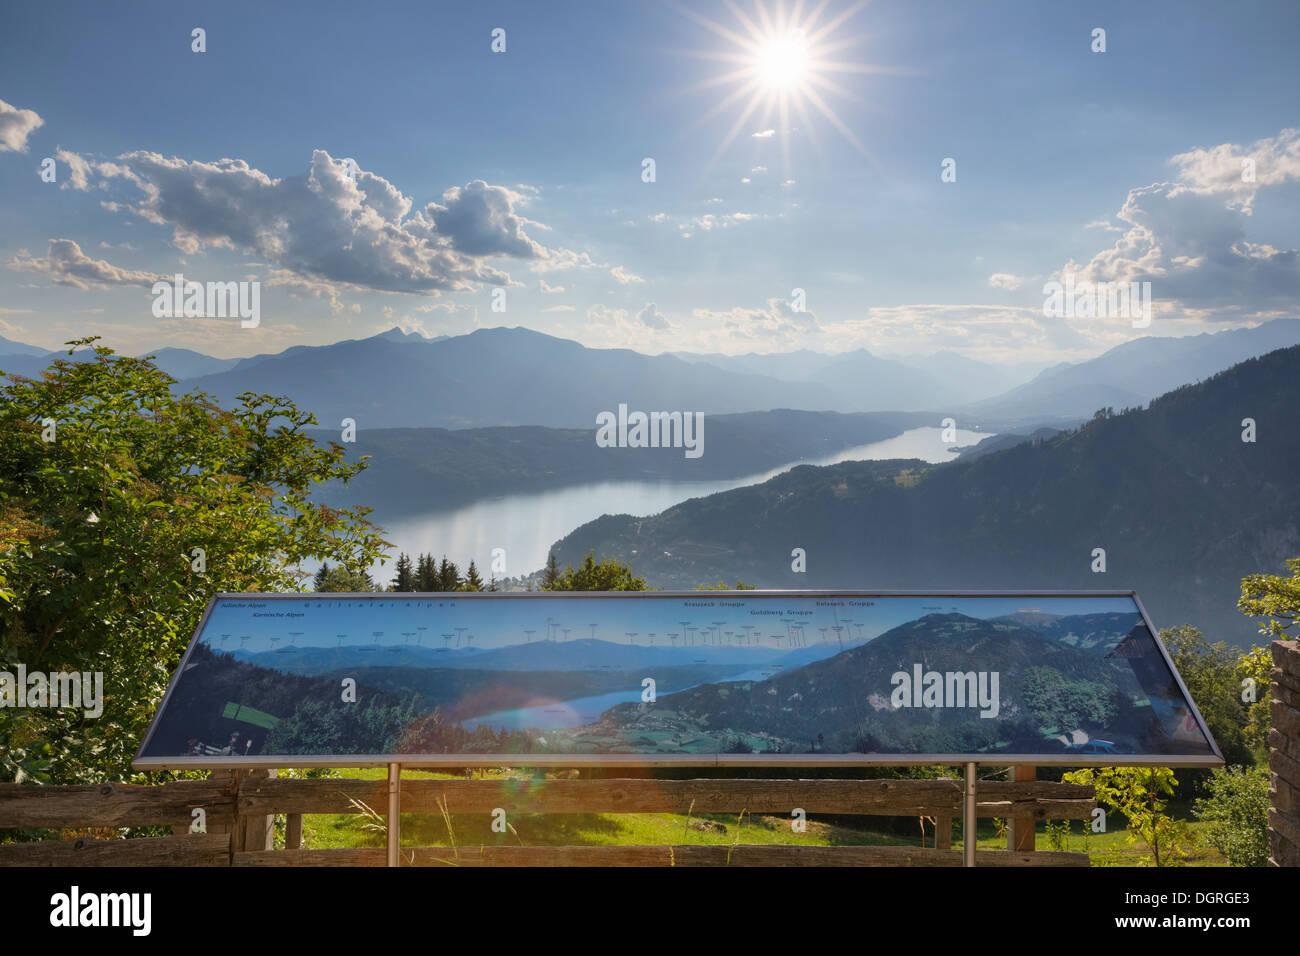 Austria, Carinthia, Gschriet, panorama tableau and view to Millstaetter See - Stock Image